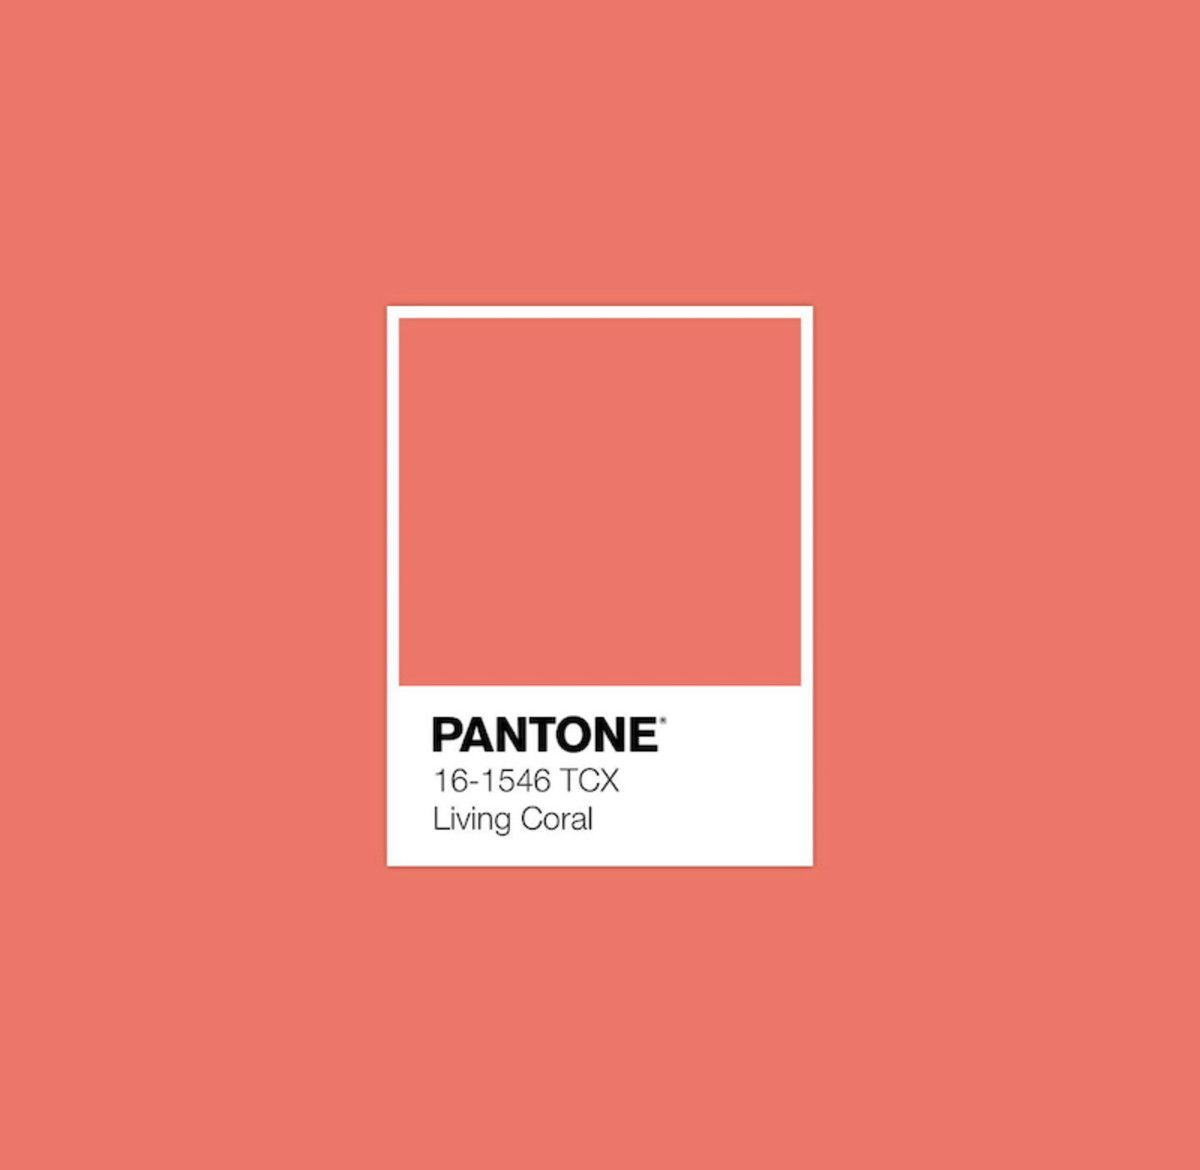 Pantone Colour Of The Year 2019 Living Coral Pantone Color Pantone Colour Palettes Pantone